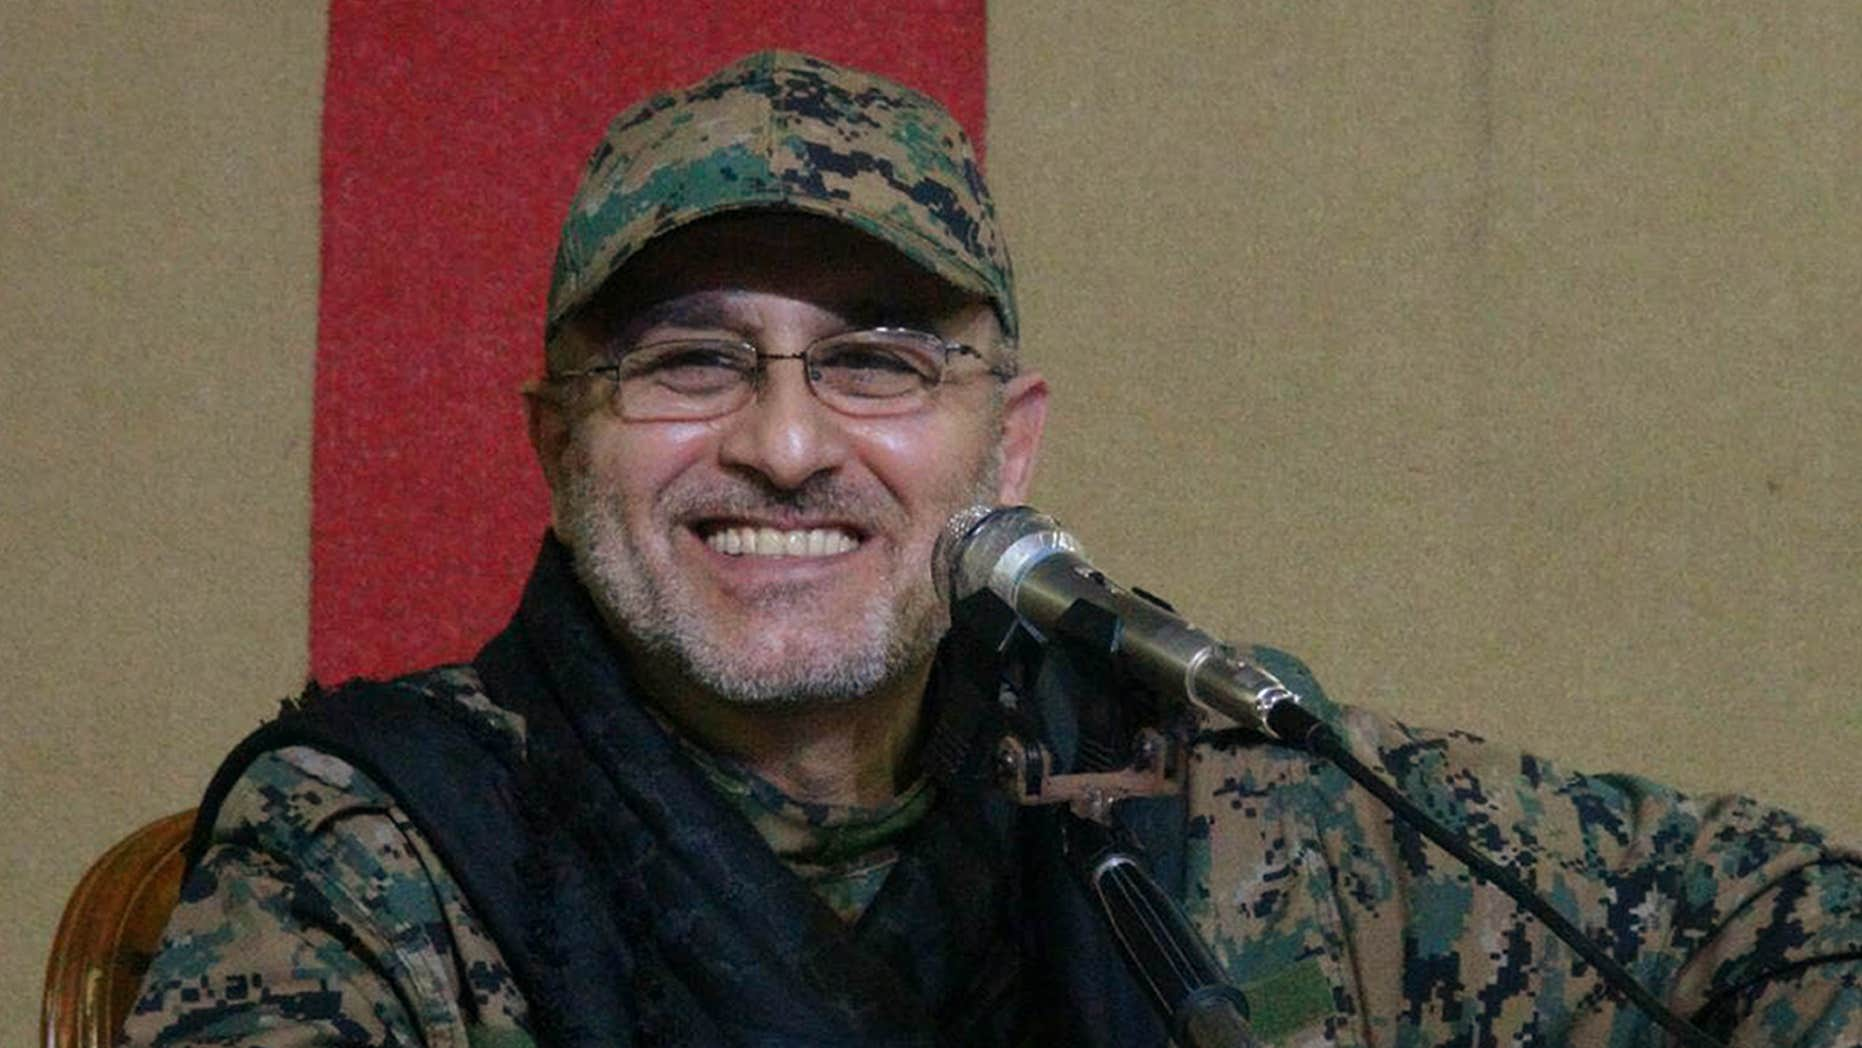 This undated handout image released on Friday, May 13, 2016, by Hezbollah Media Department, shows slain top military commander Mustafa Badreddine smiling during a meeting.